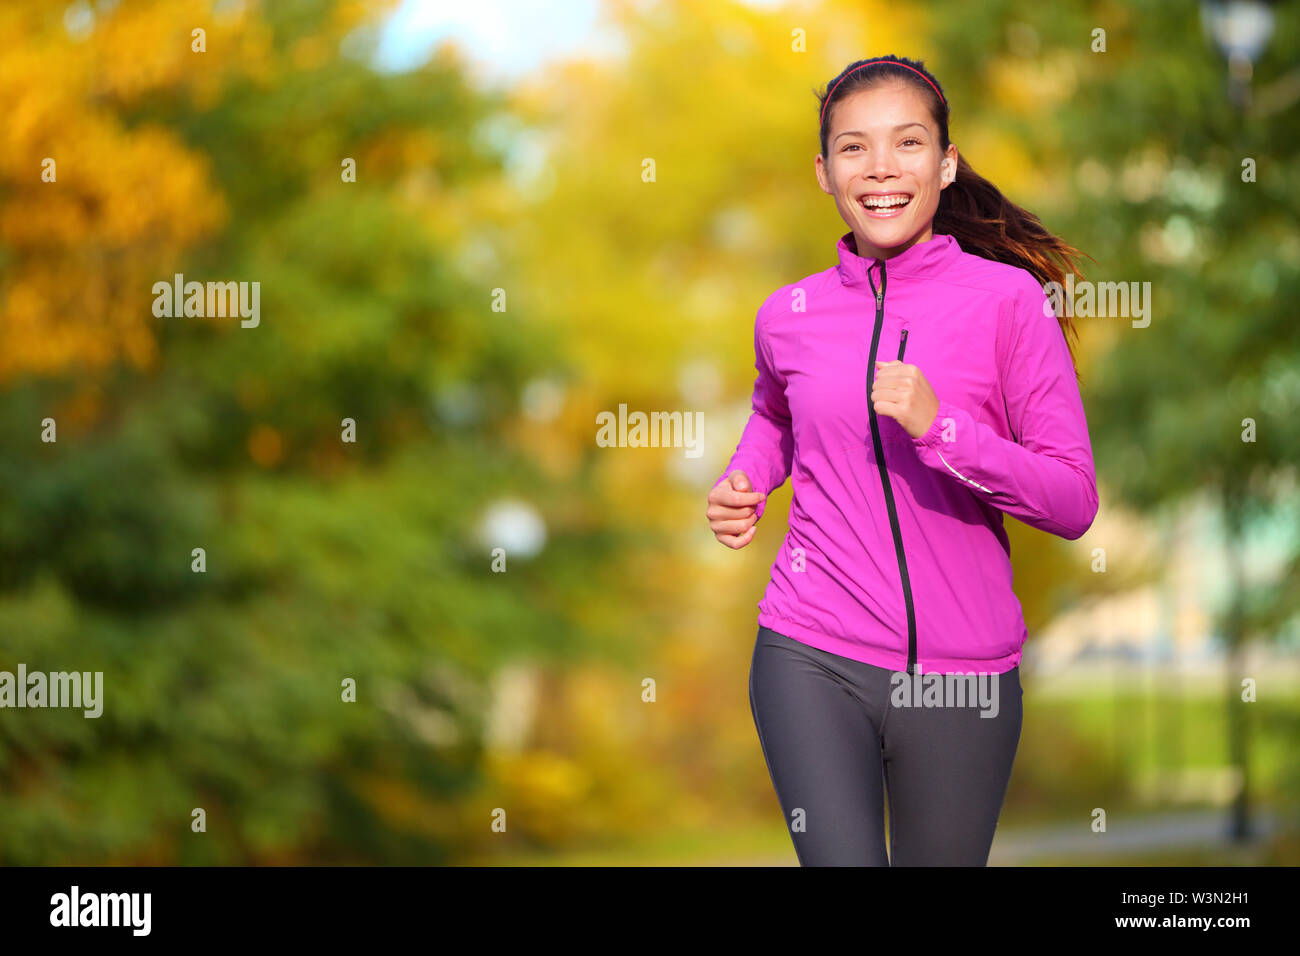 Female jogger. Fit young Asian woman jogging in park smiling happy running and enjoying a healthy outdoor lifestyle. Fitness runner girl in autumn forest with fall foliage. Mixed race Asian Caucasian. - Stock Image